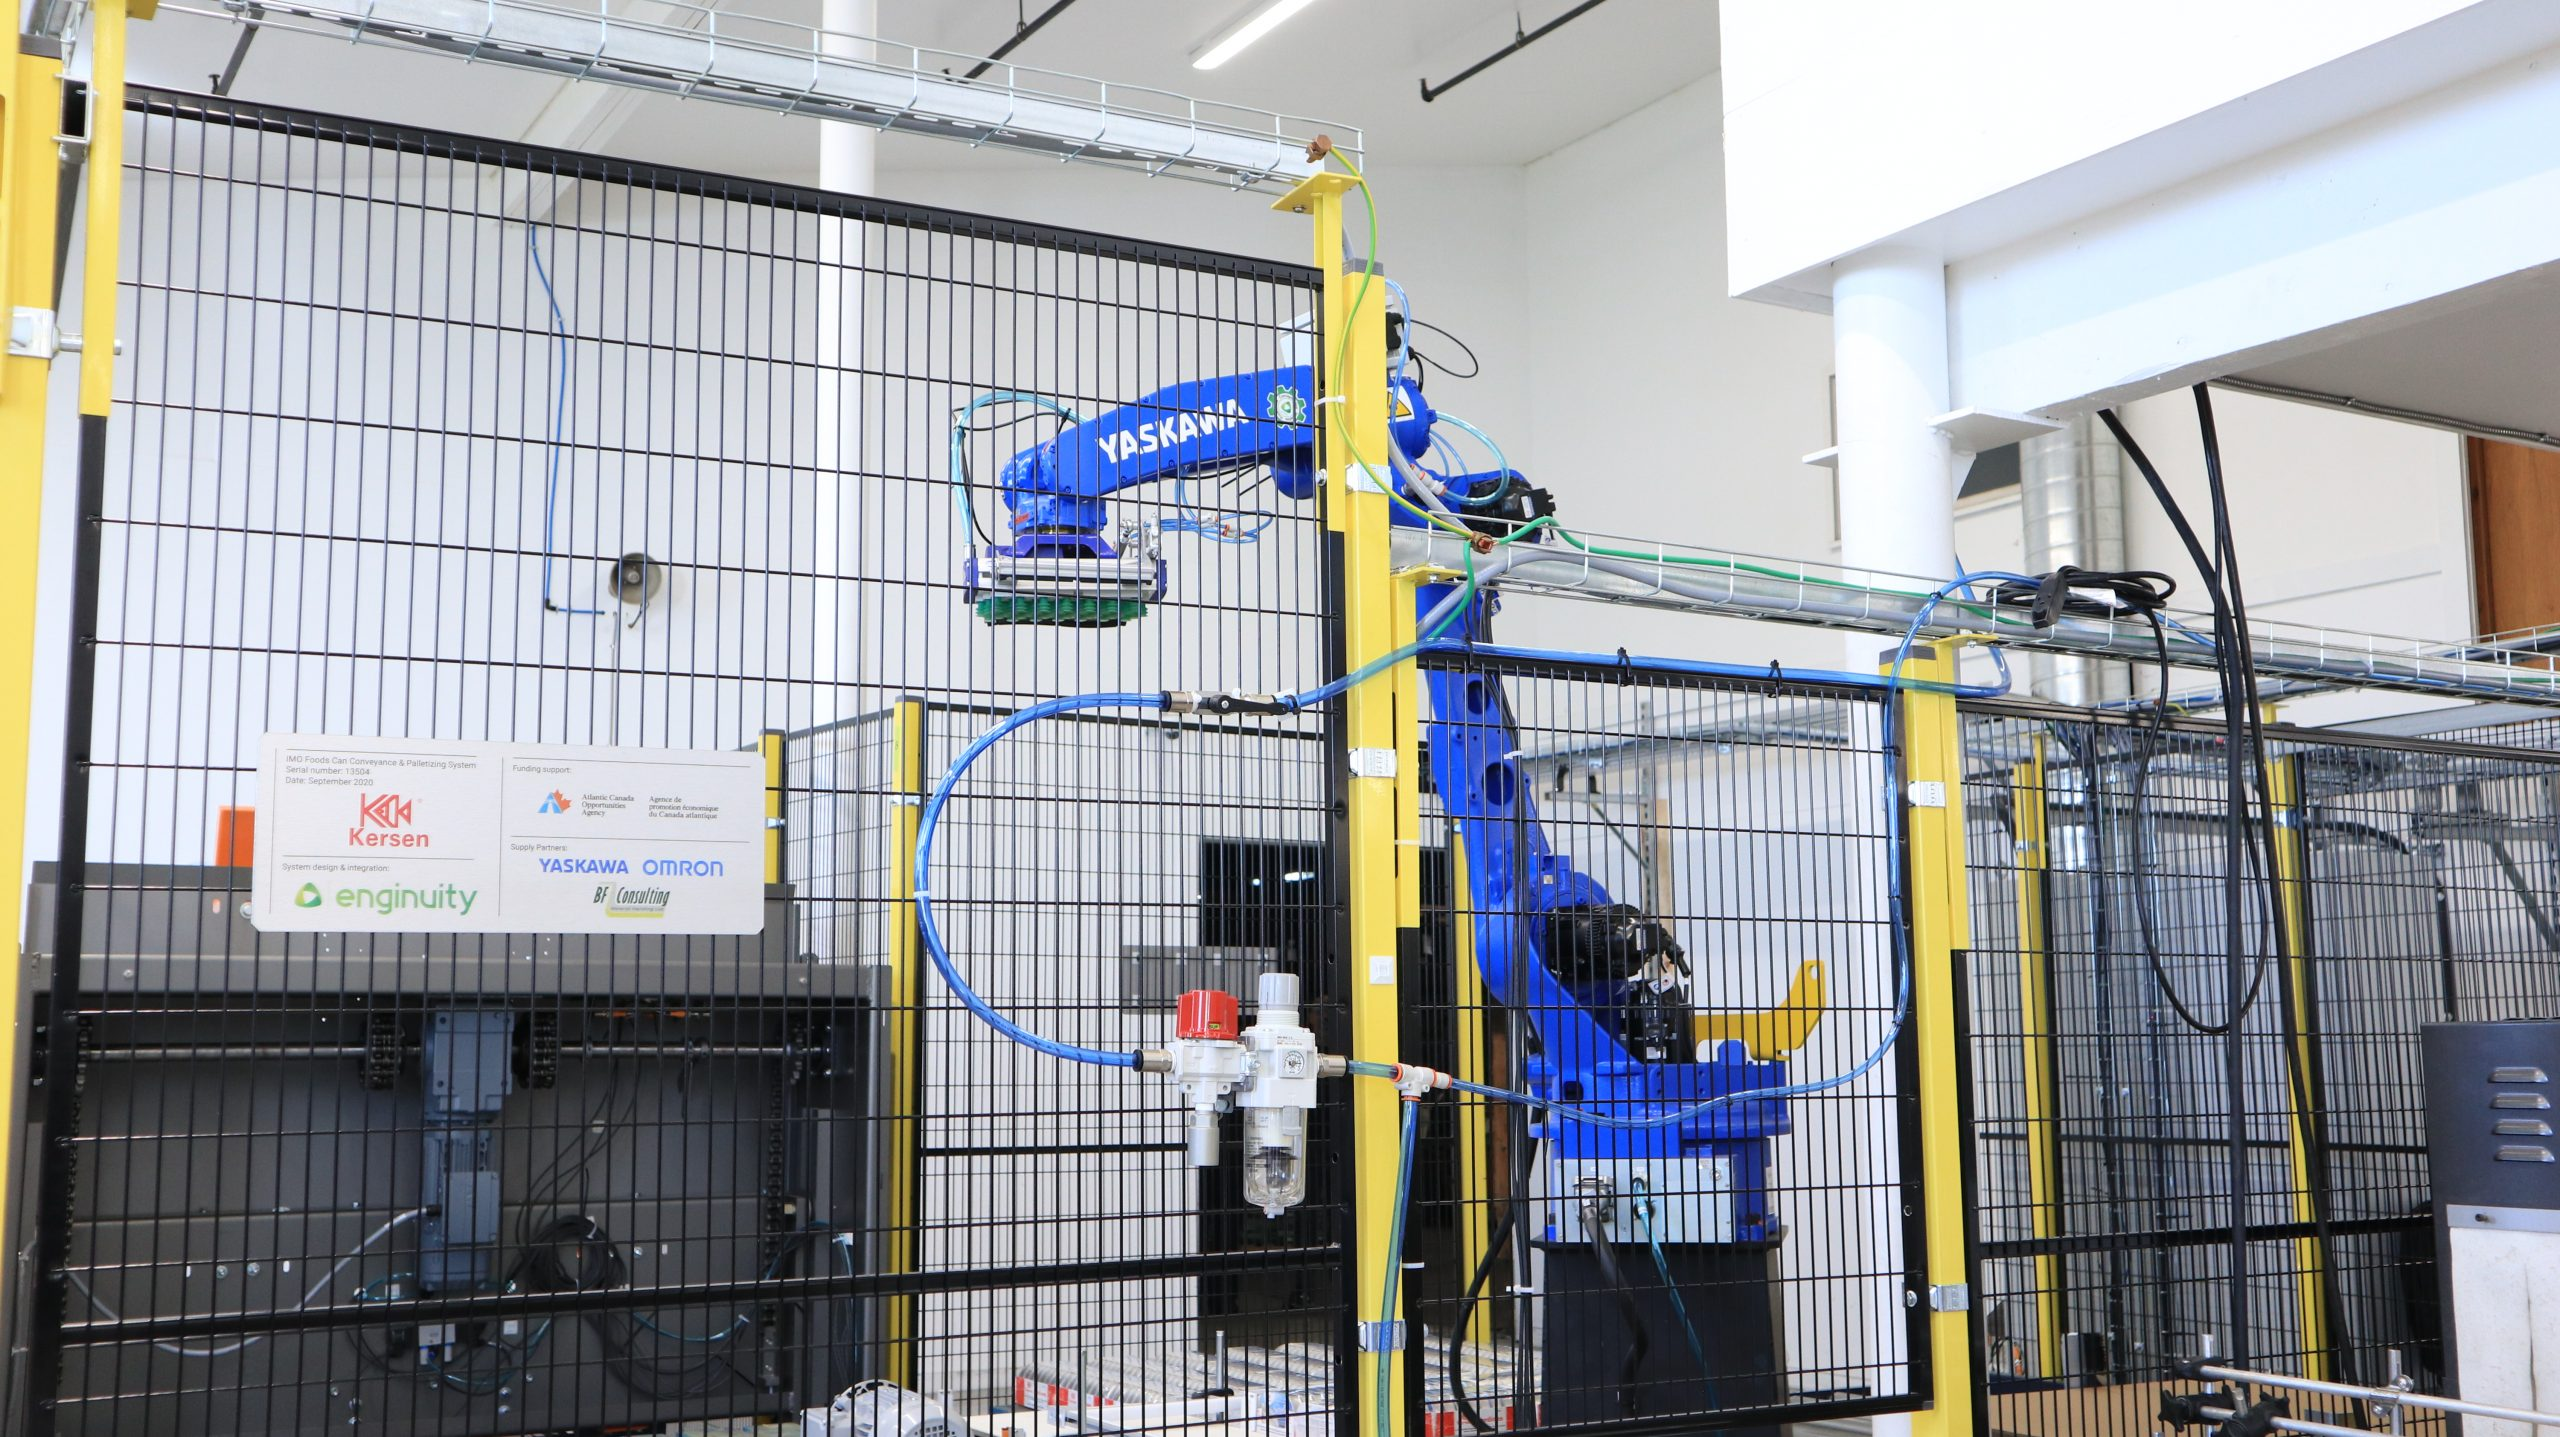 Robot Robotic Cell enginuity